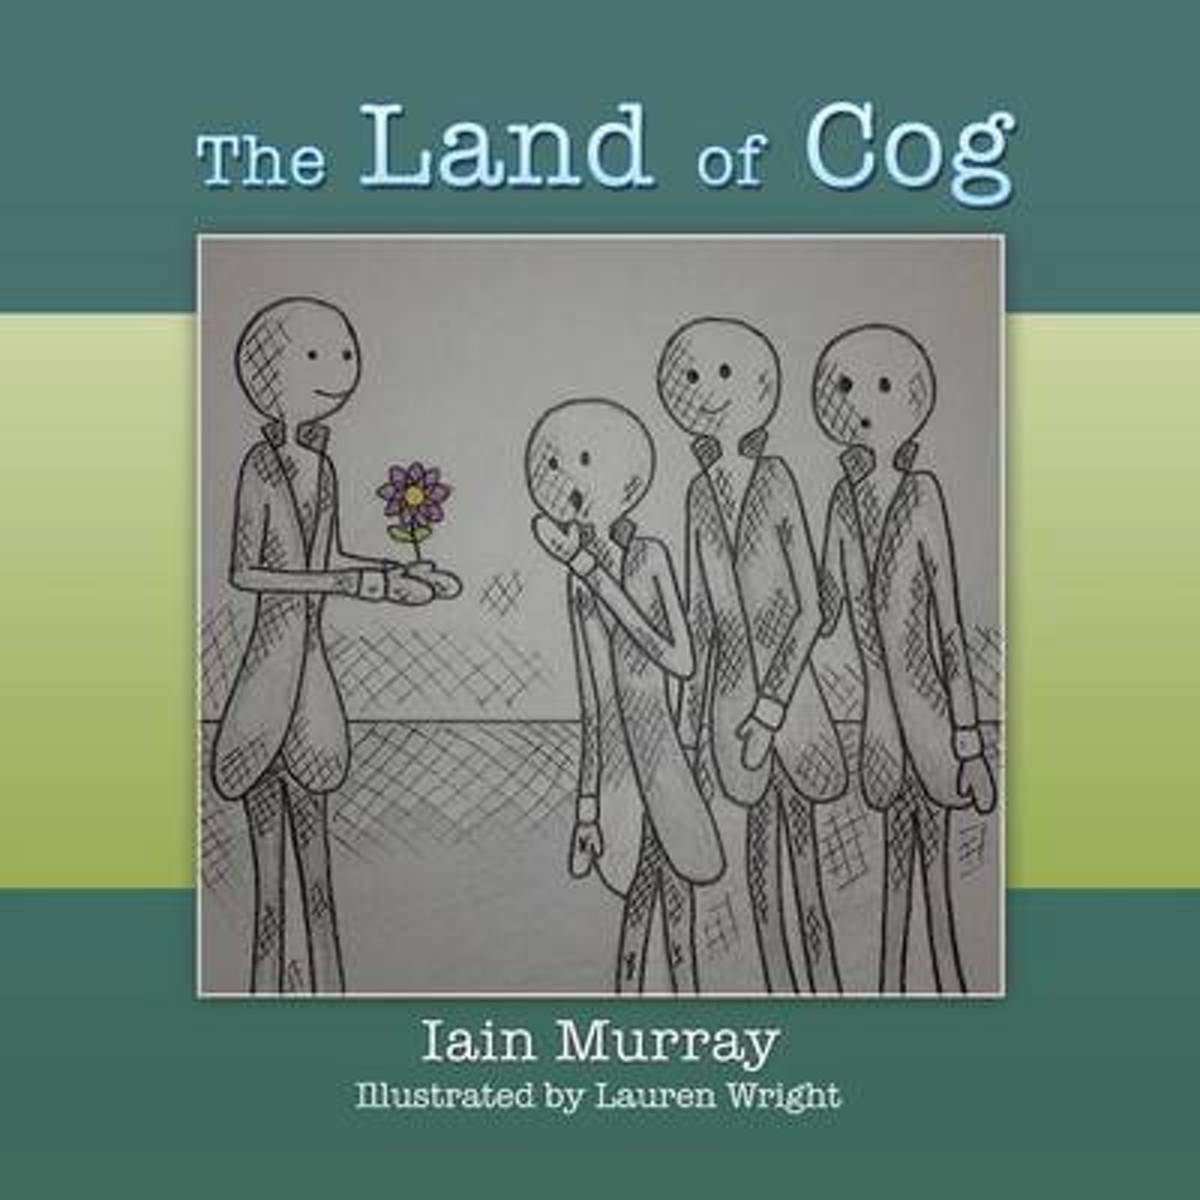 The Land of Cog